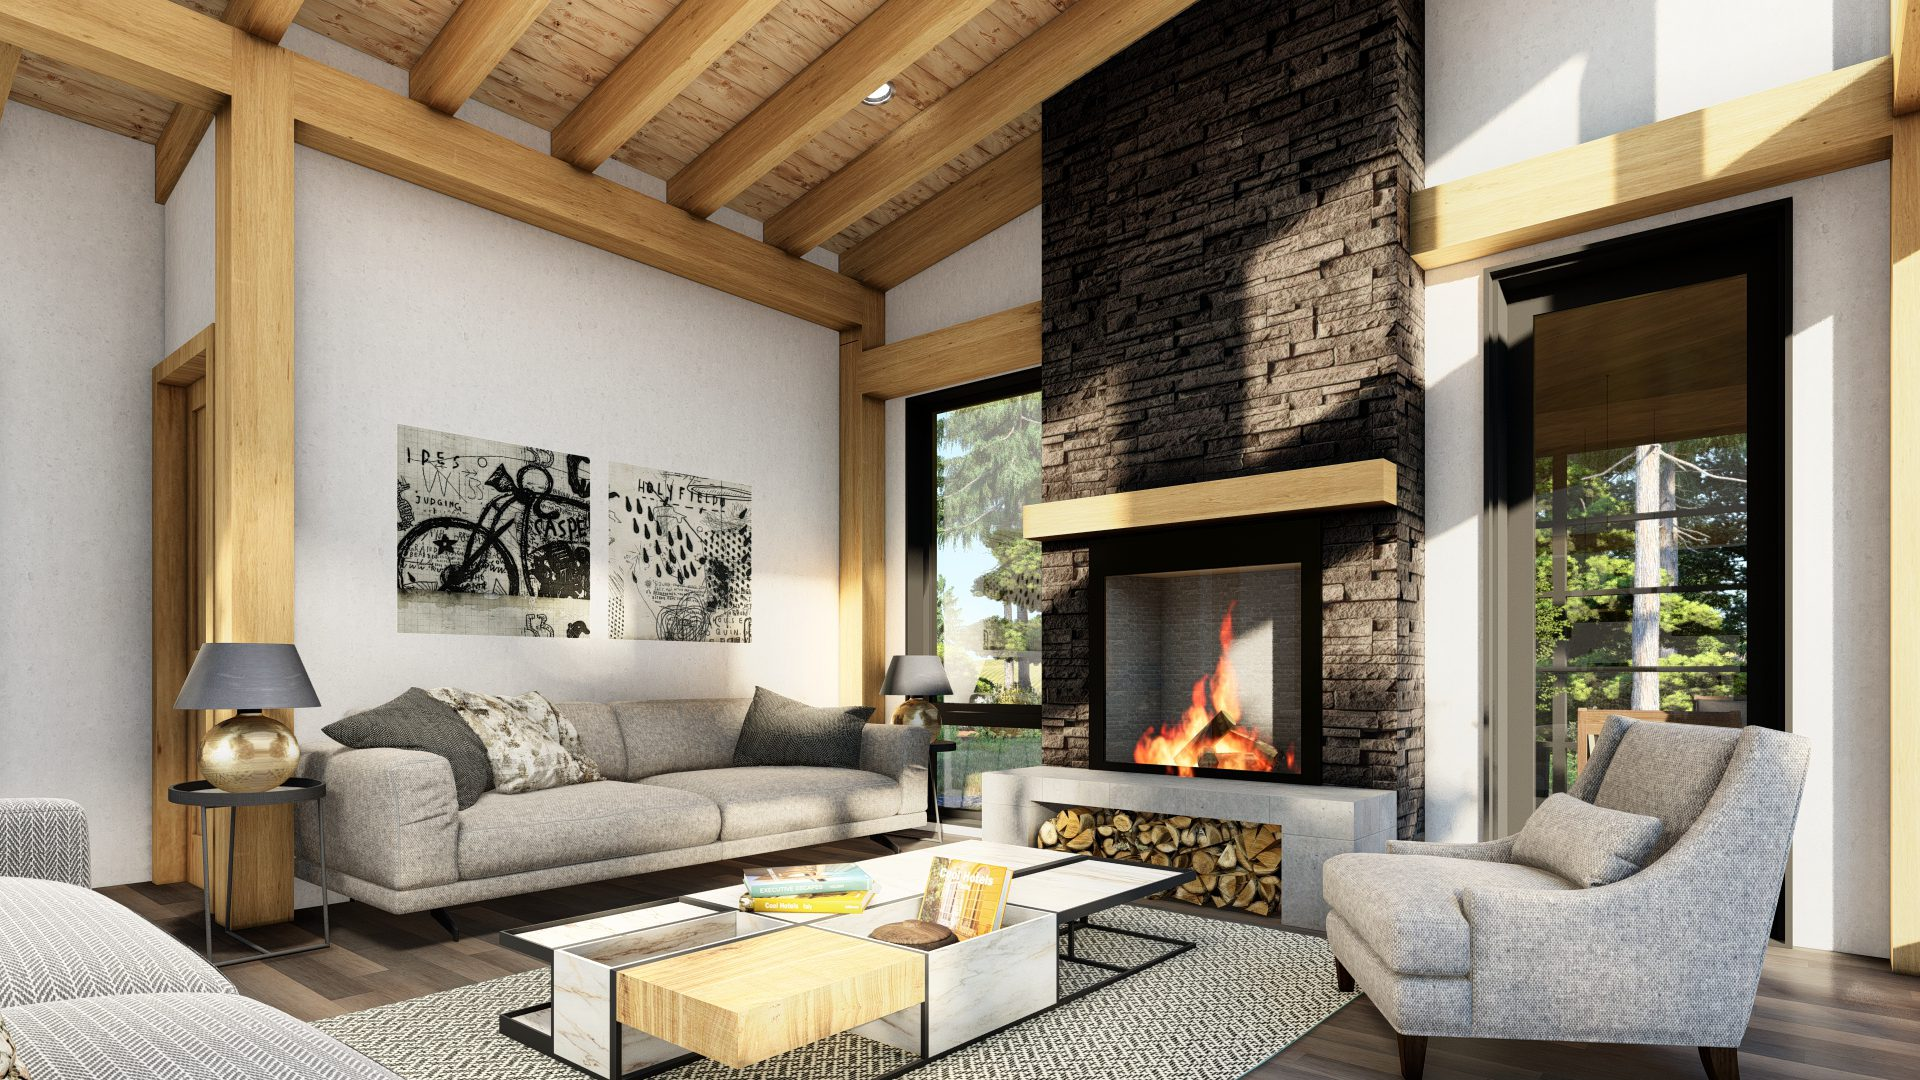 Normerica Timber Frames, House Plan, The Bayfield 3945, Interior, Dining Room, Living Room, Fireplace